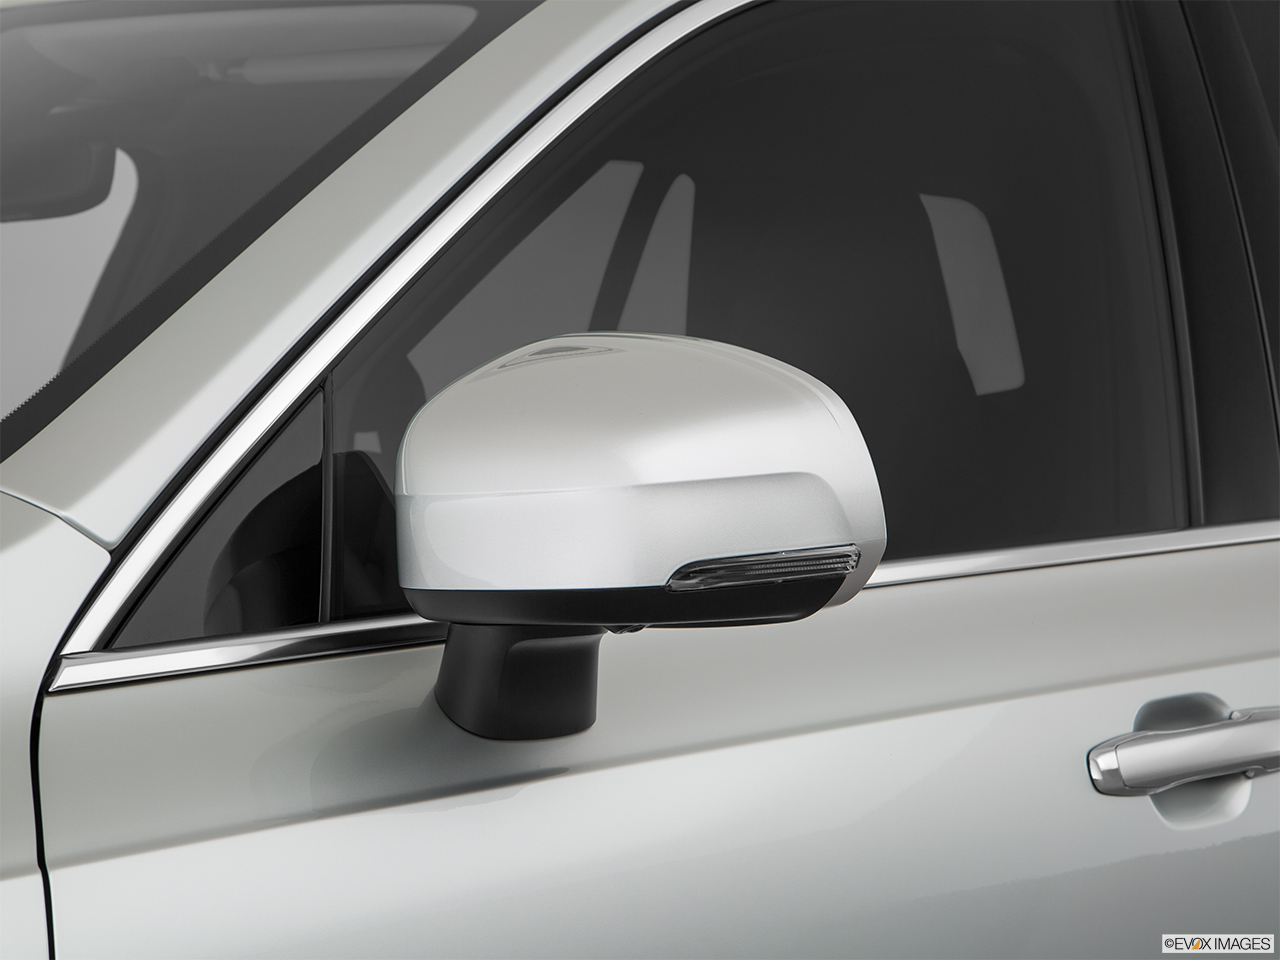 2019 Volvo XC90  T6 Inscription Driver's side mirror, 3_4 rear